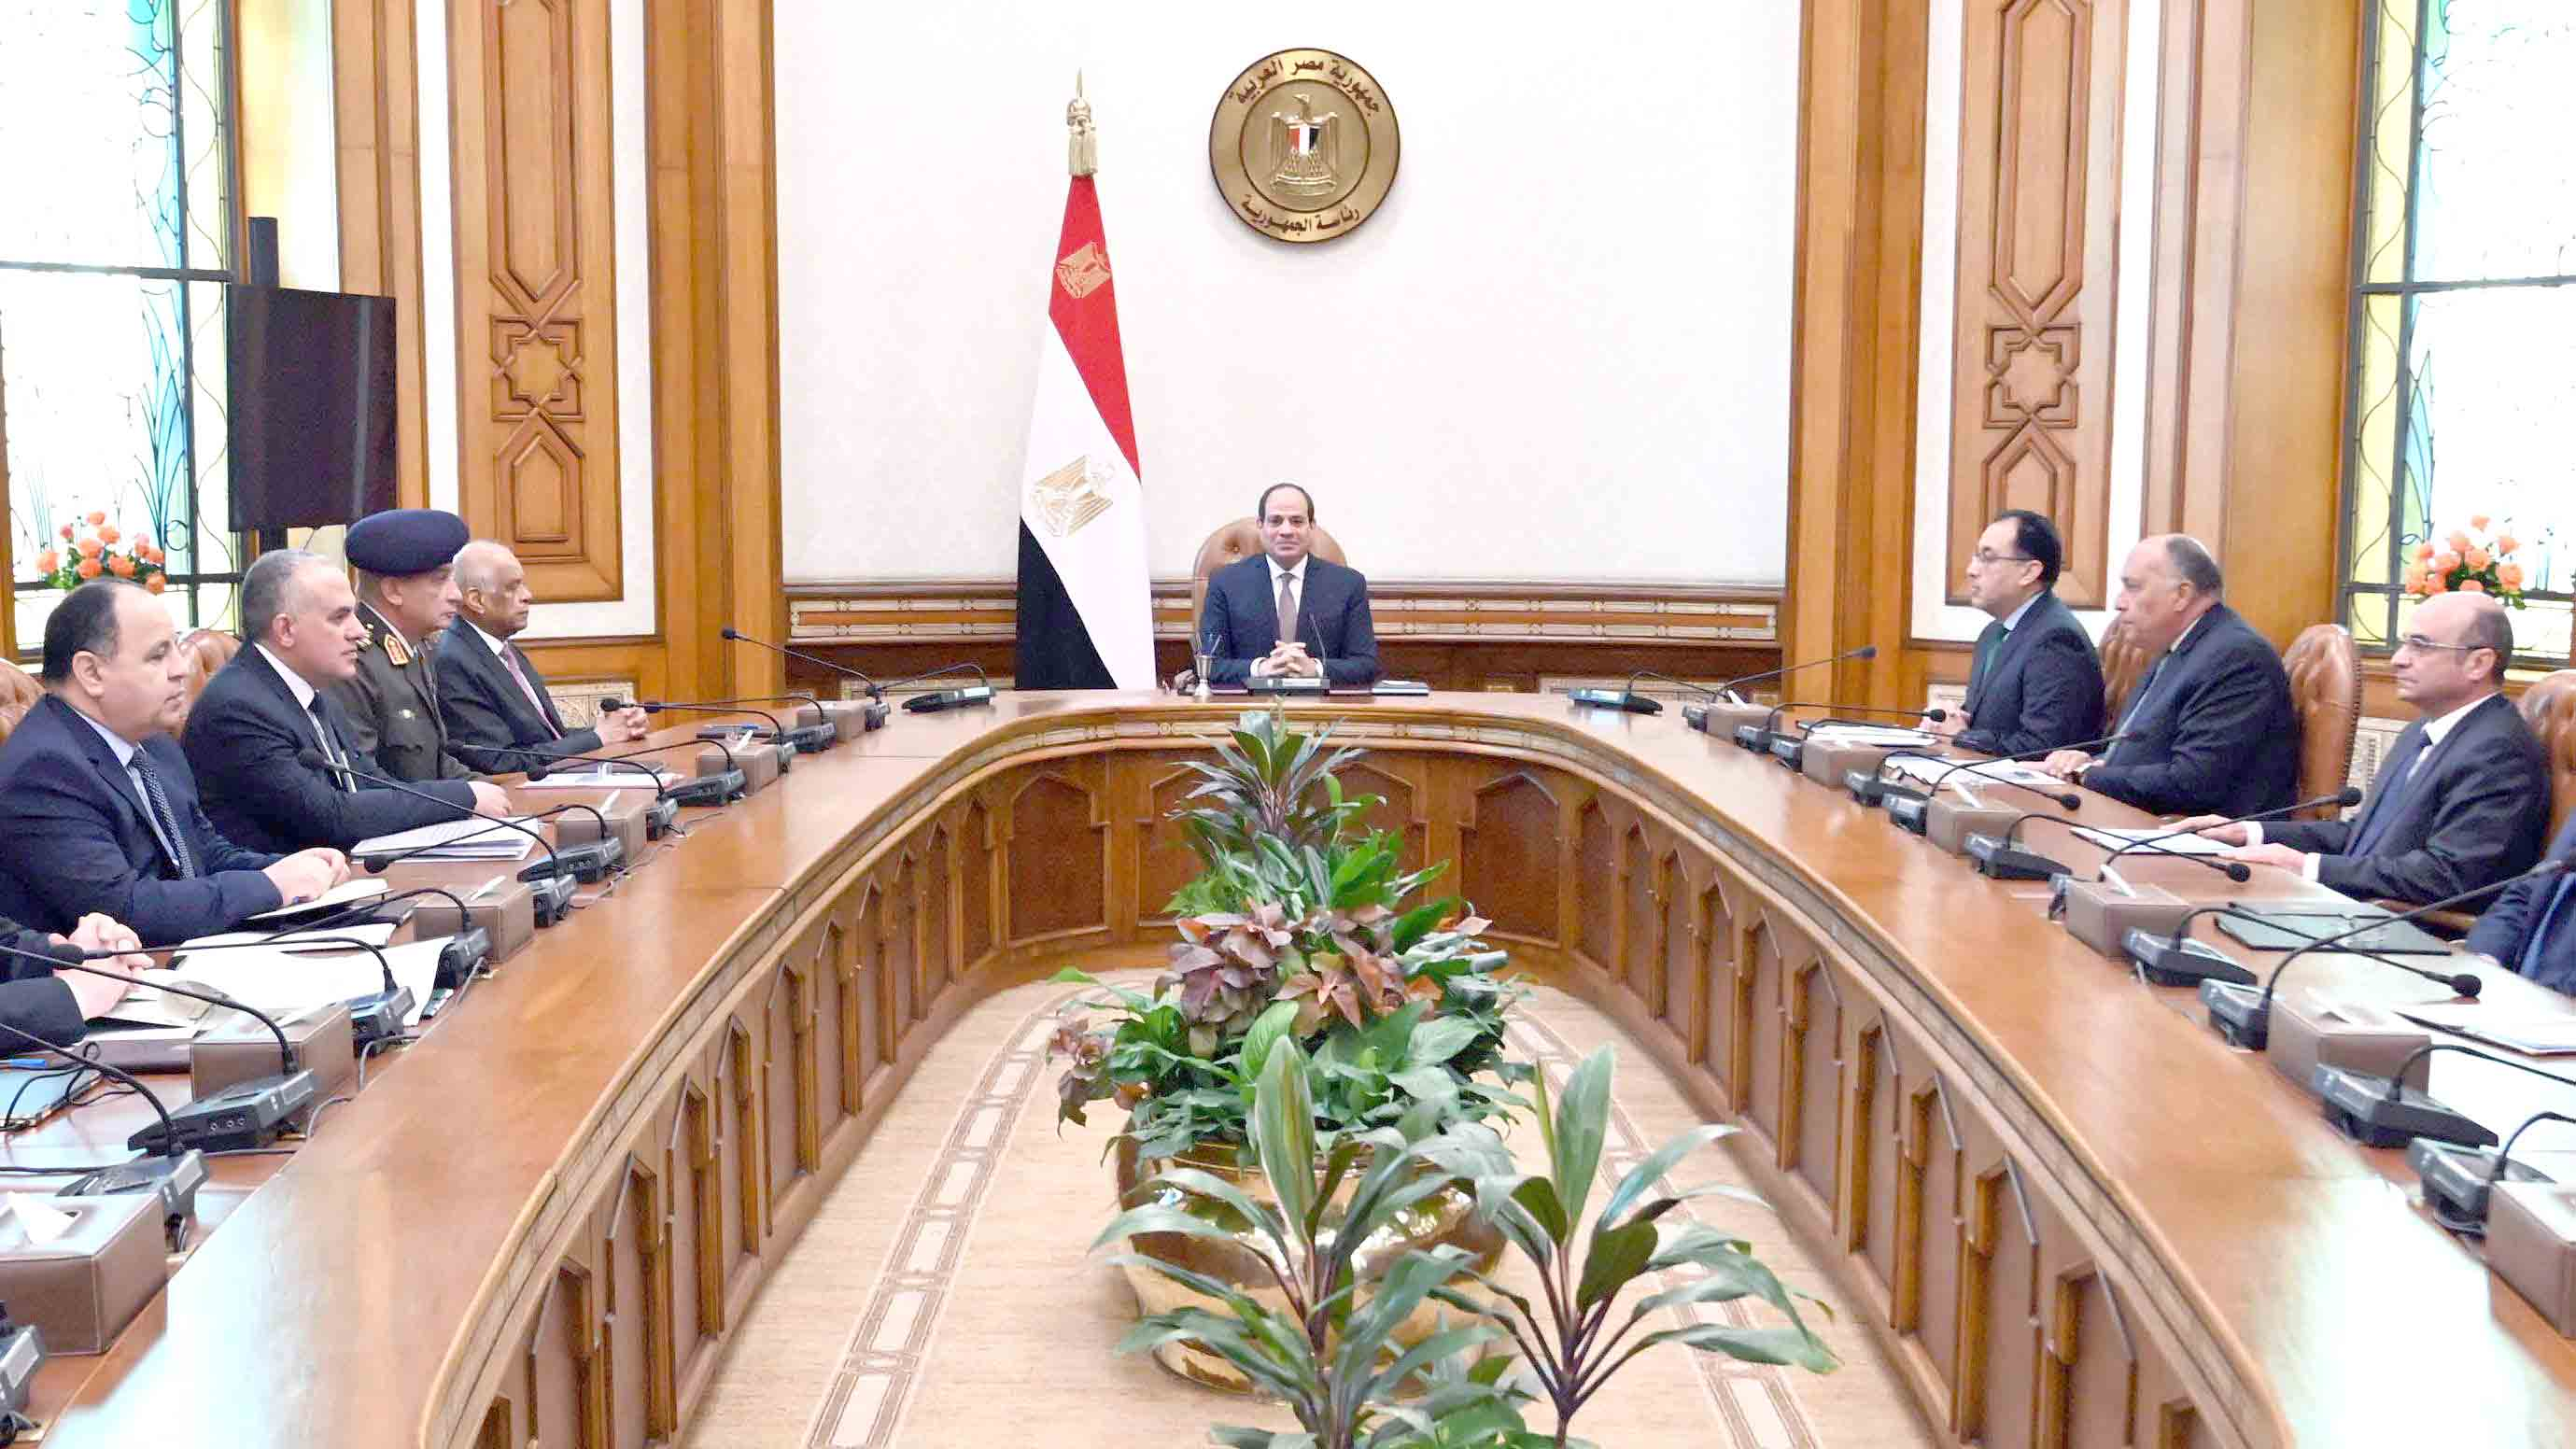 Egyptian President Abdel Fattah al-Sisi (C) presides over the National Security Council, which convened to discuss potential escalations arising from foreign military intervention in Libya, January 2.(Egyptian Presidency)